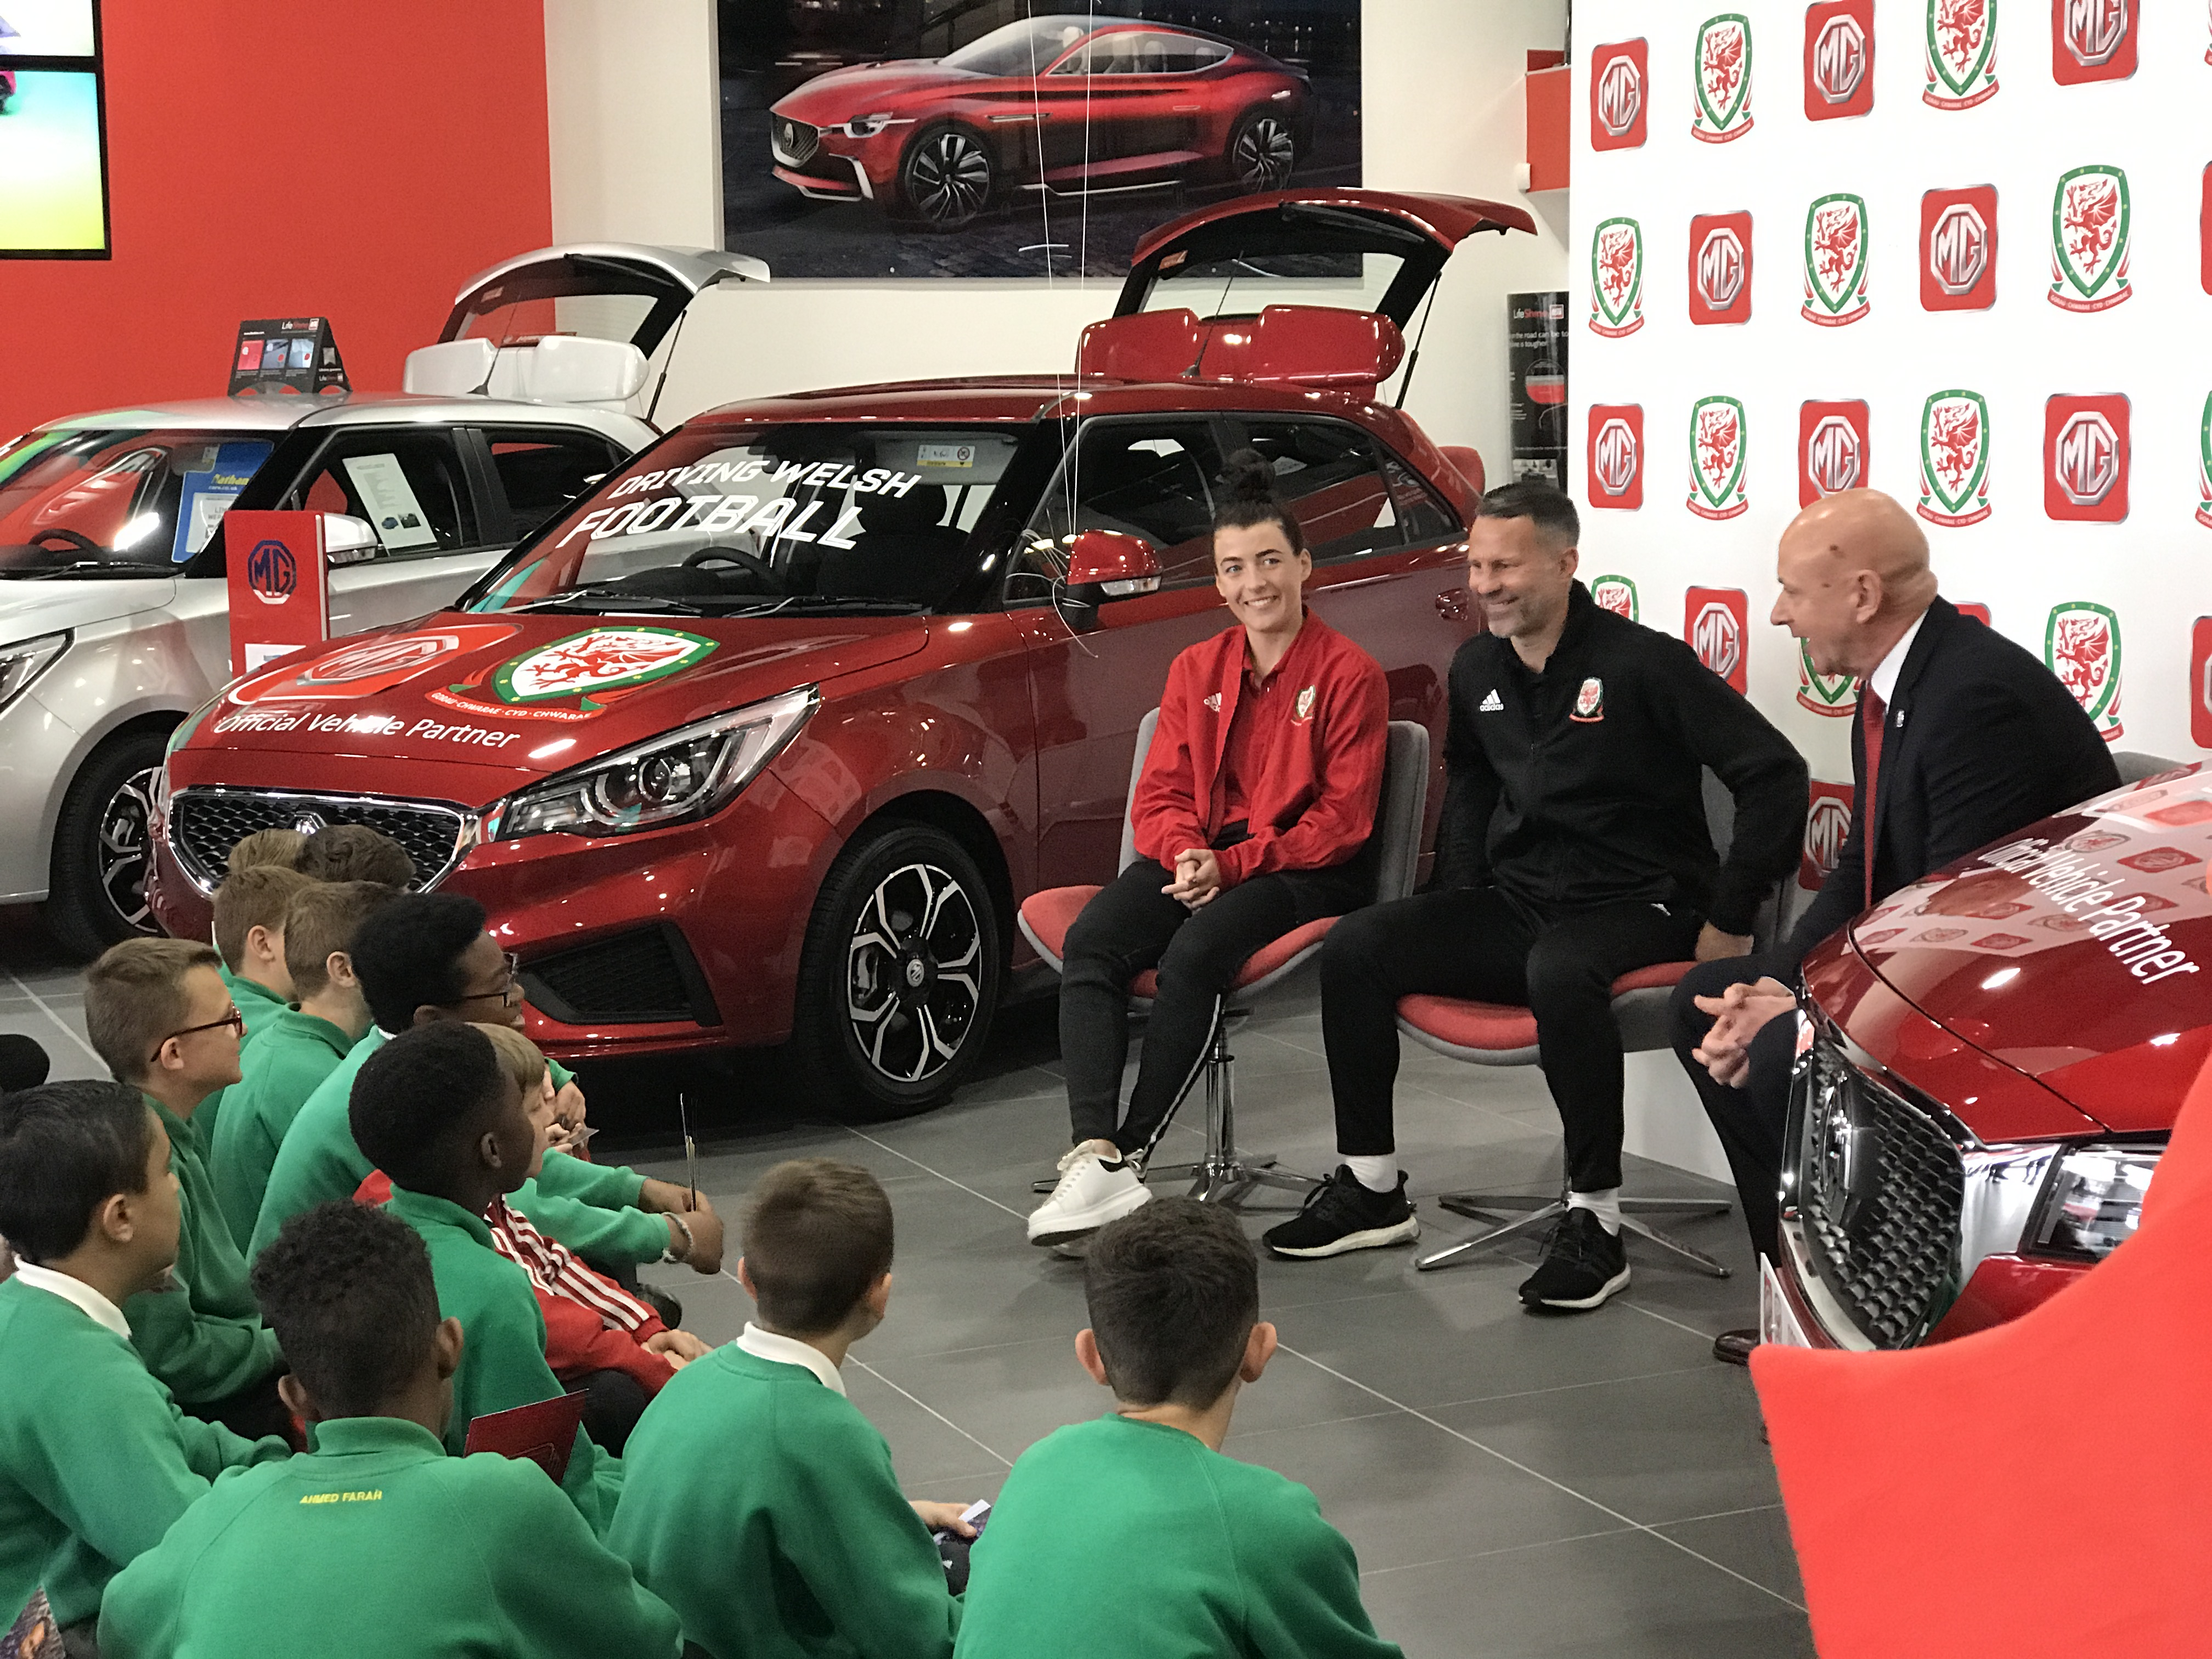 MG Motor UK Confirmed as Official Vehicle Partner of the Football Association of Wales